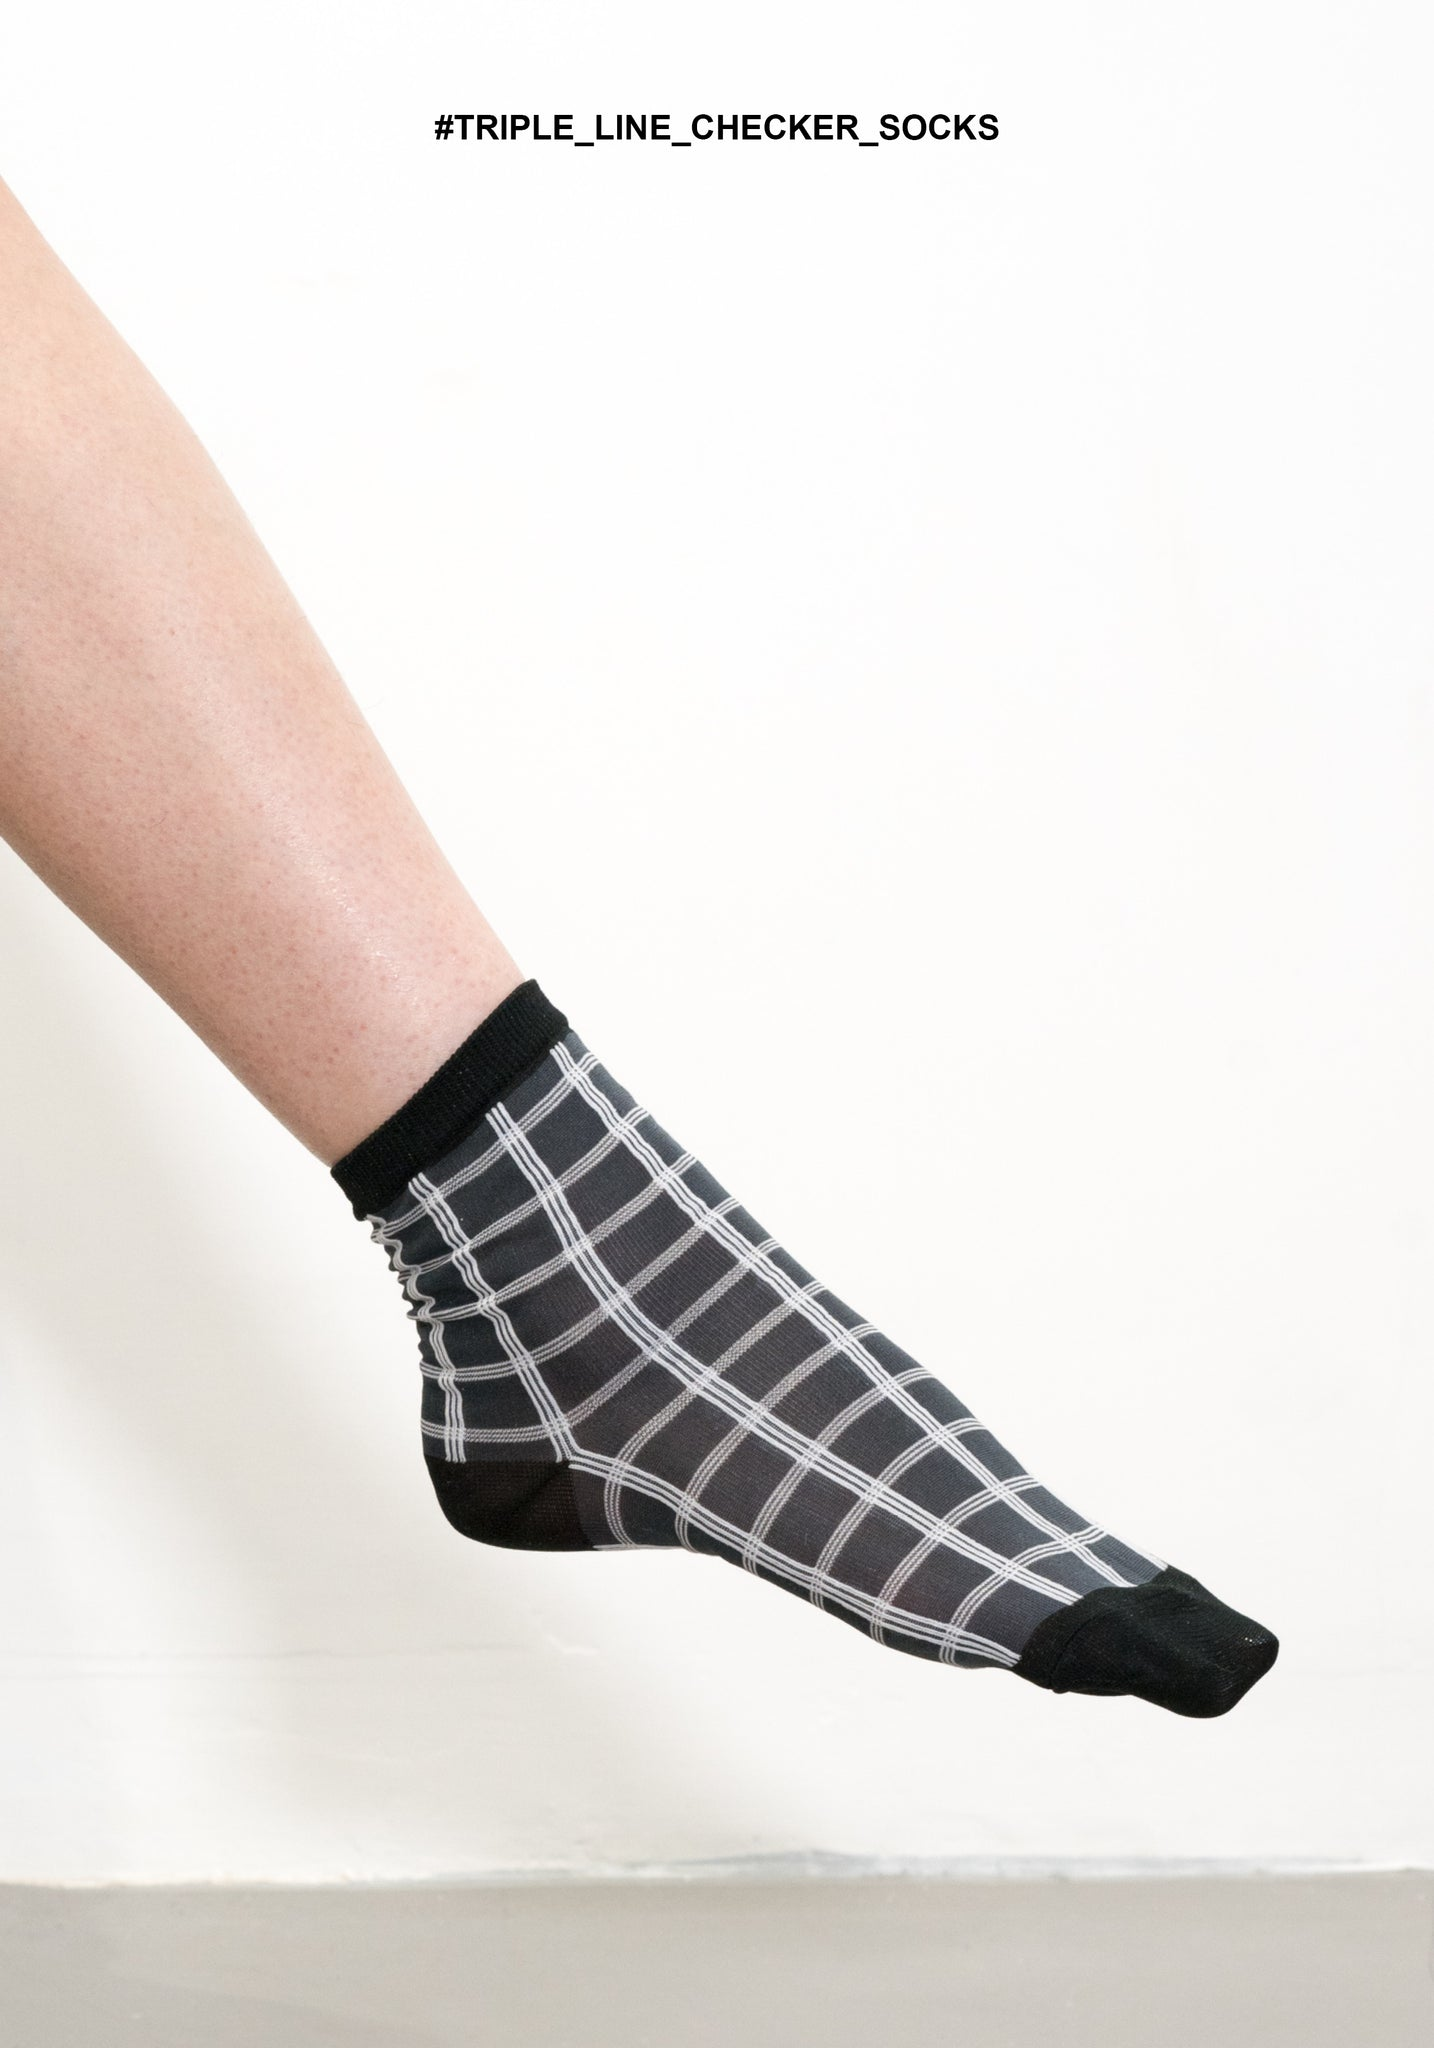 Triple Line Checker Socks - whoami